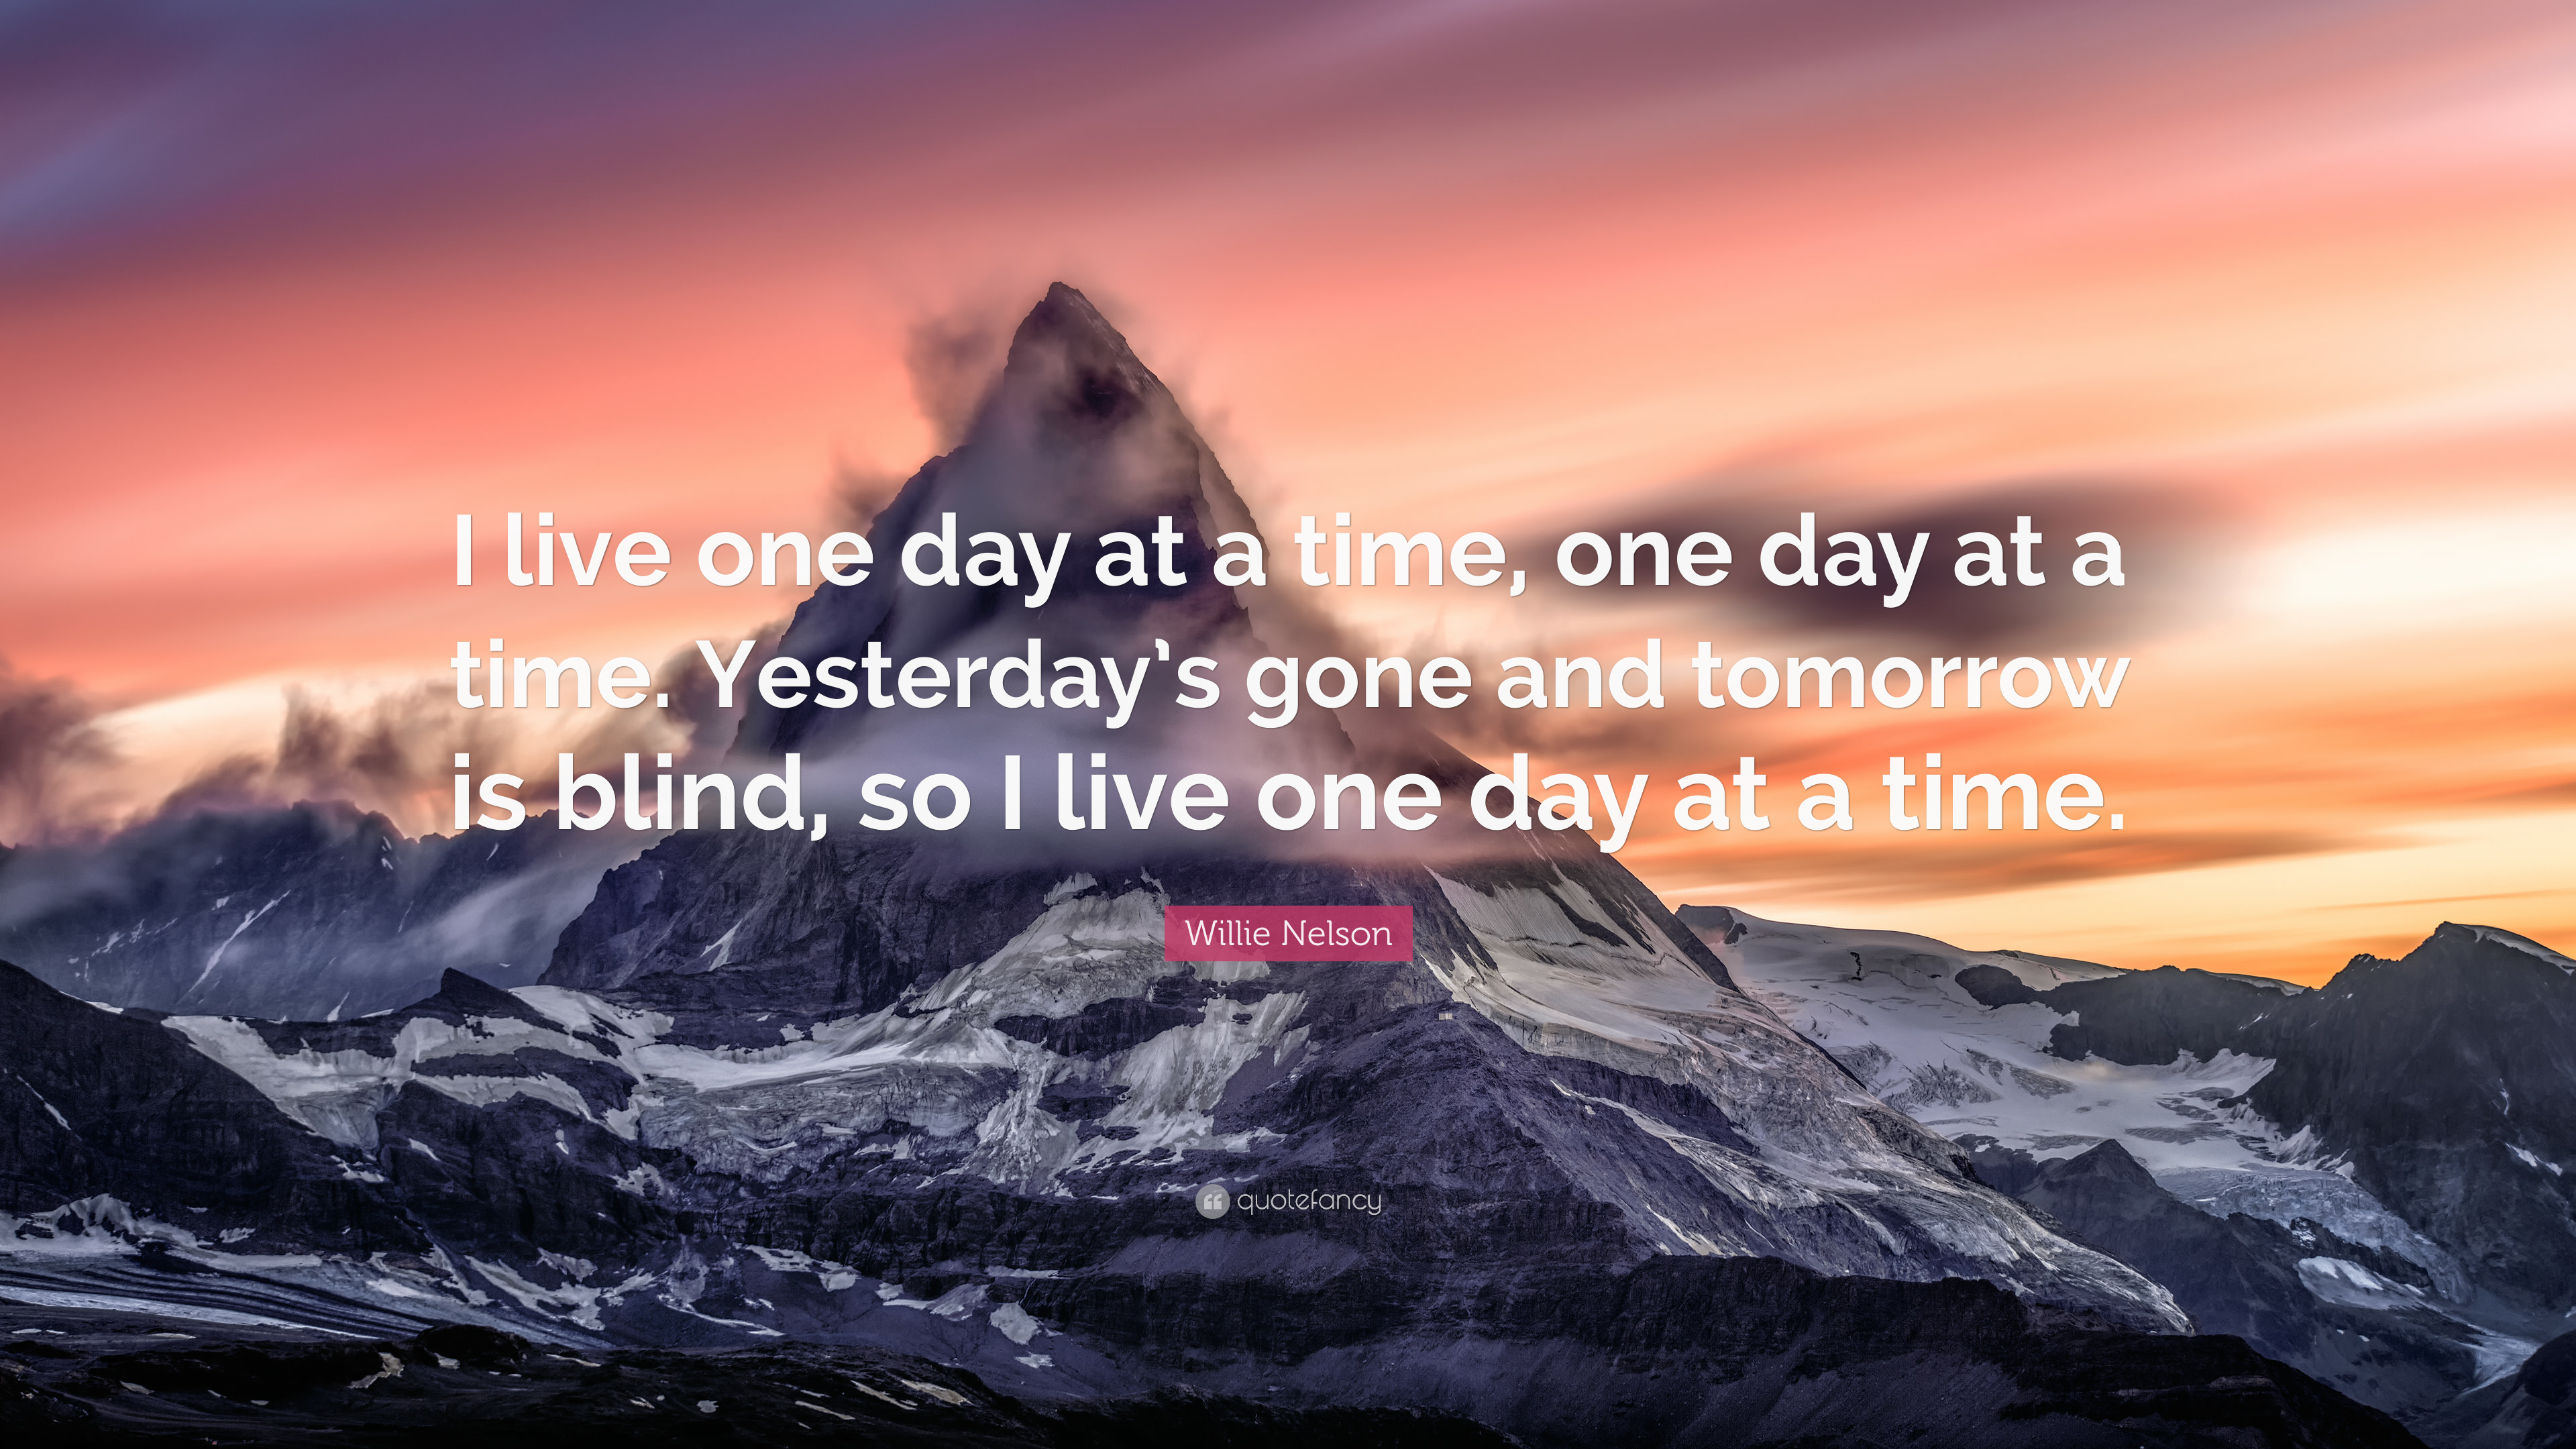 Willie Nelson Quote I Live One Day At A Time One Day At A Time